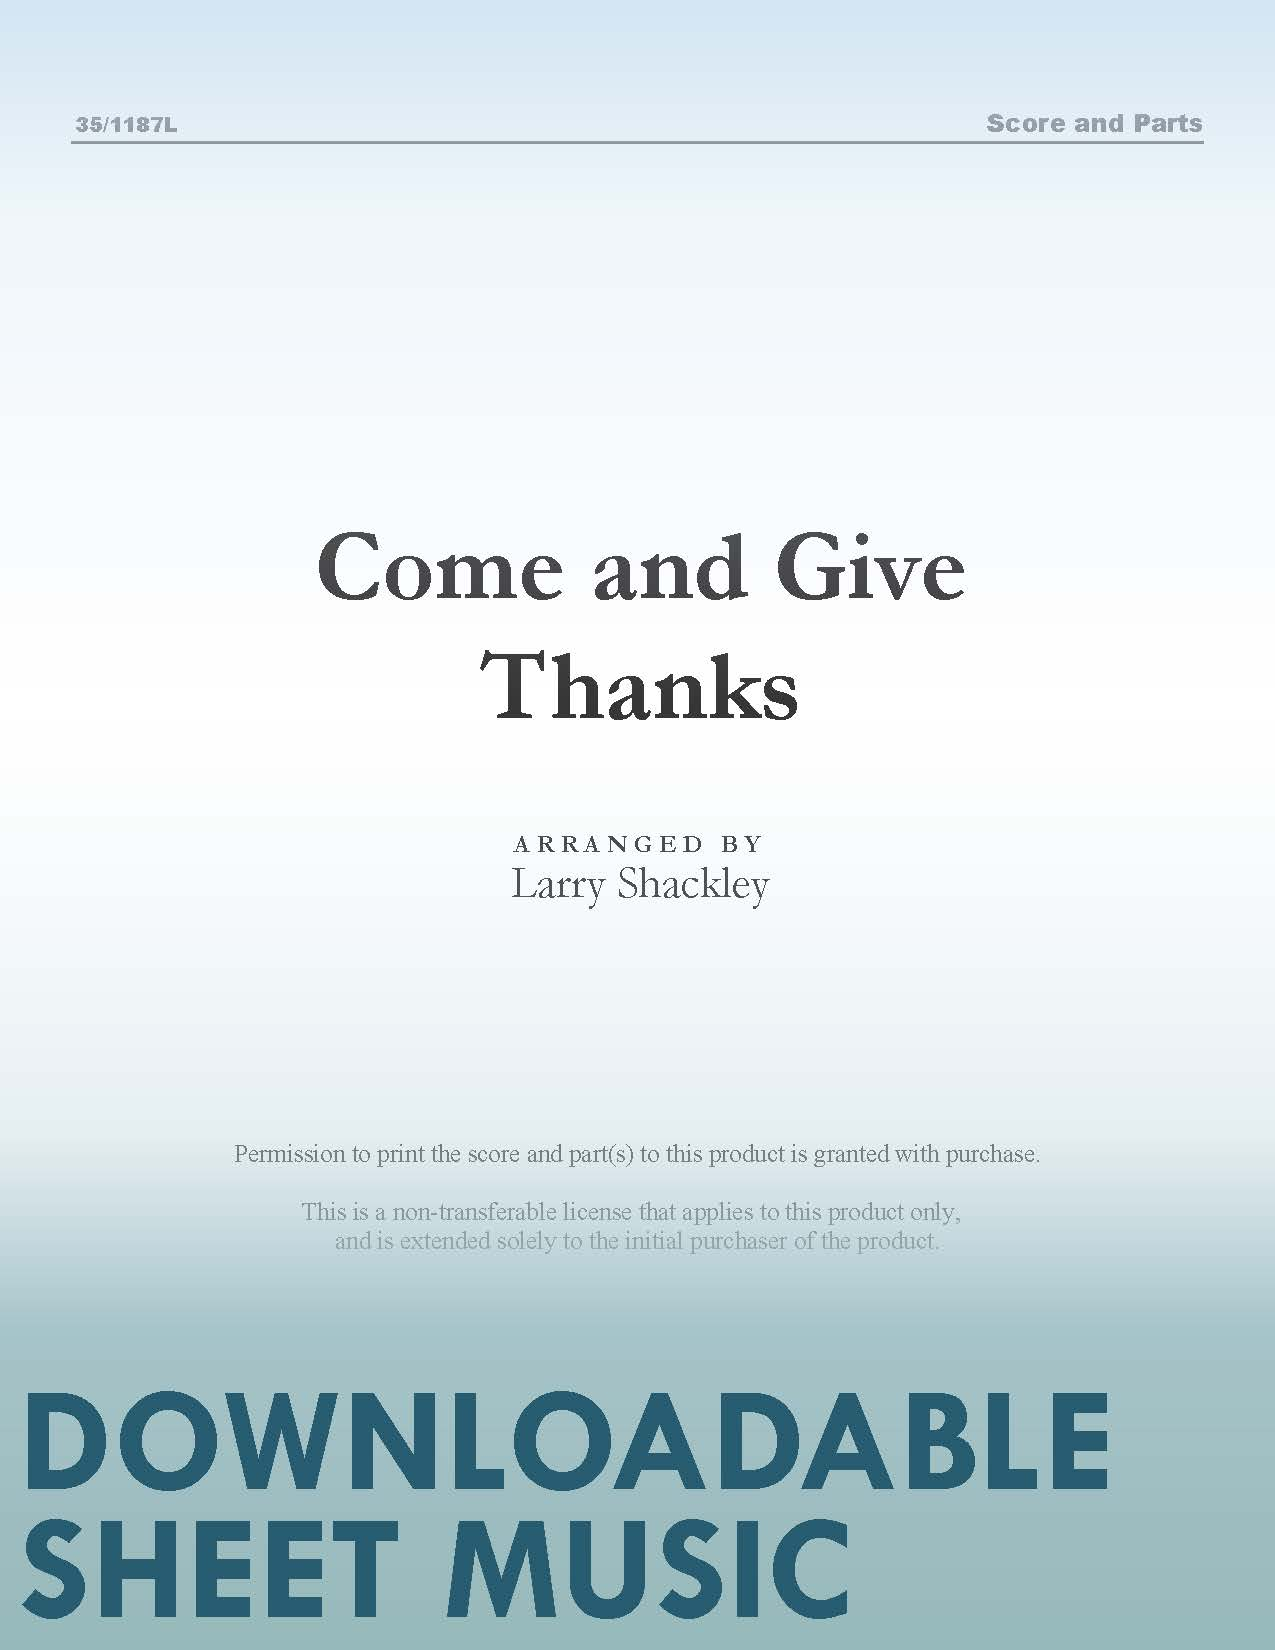 Come and Give Thanks (Digital Delivery)